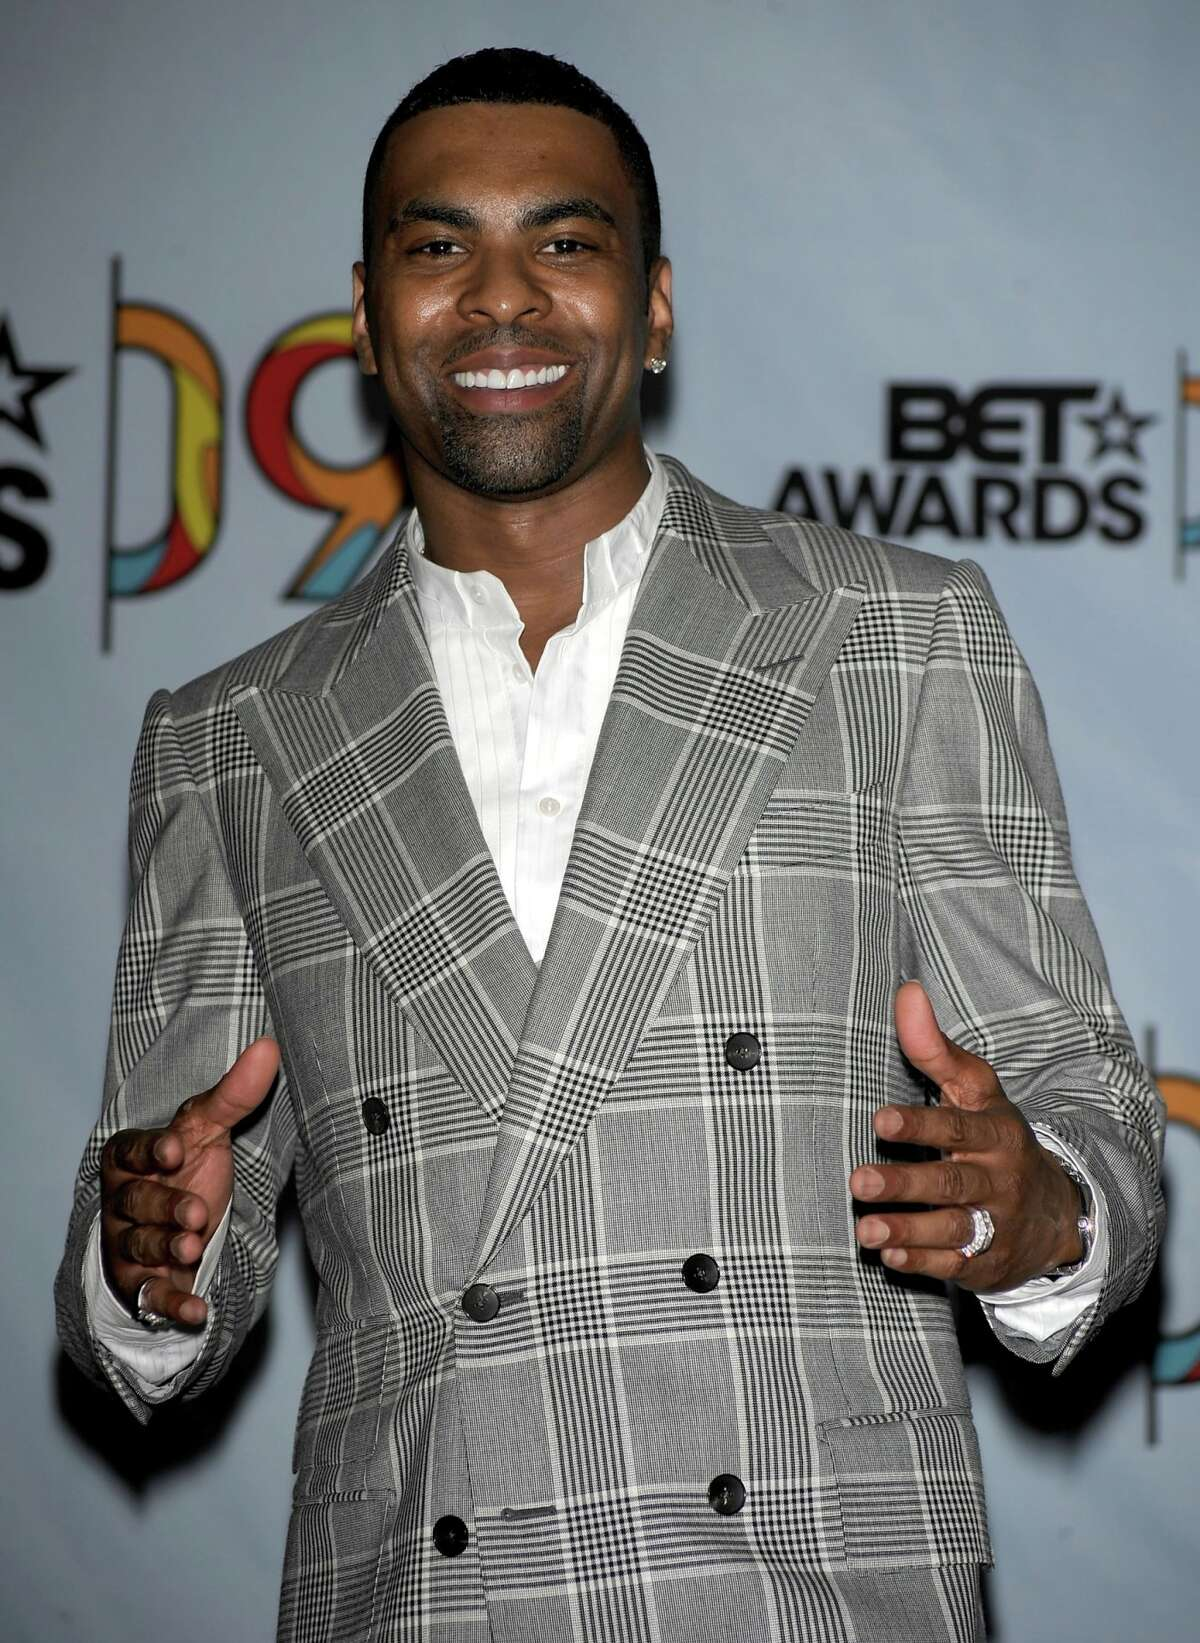 Singer Ginuwine poses in the press room during the 2009 BET Awards held at the Shrine Auditorium on June 28, 2009 in Los Angeles